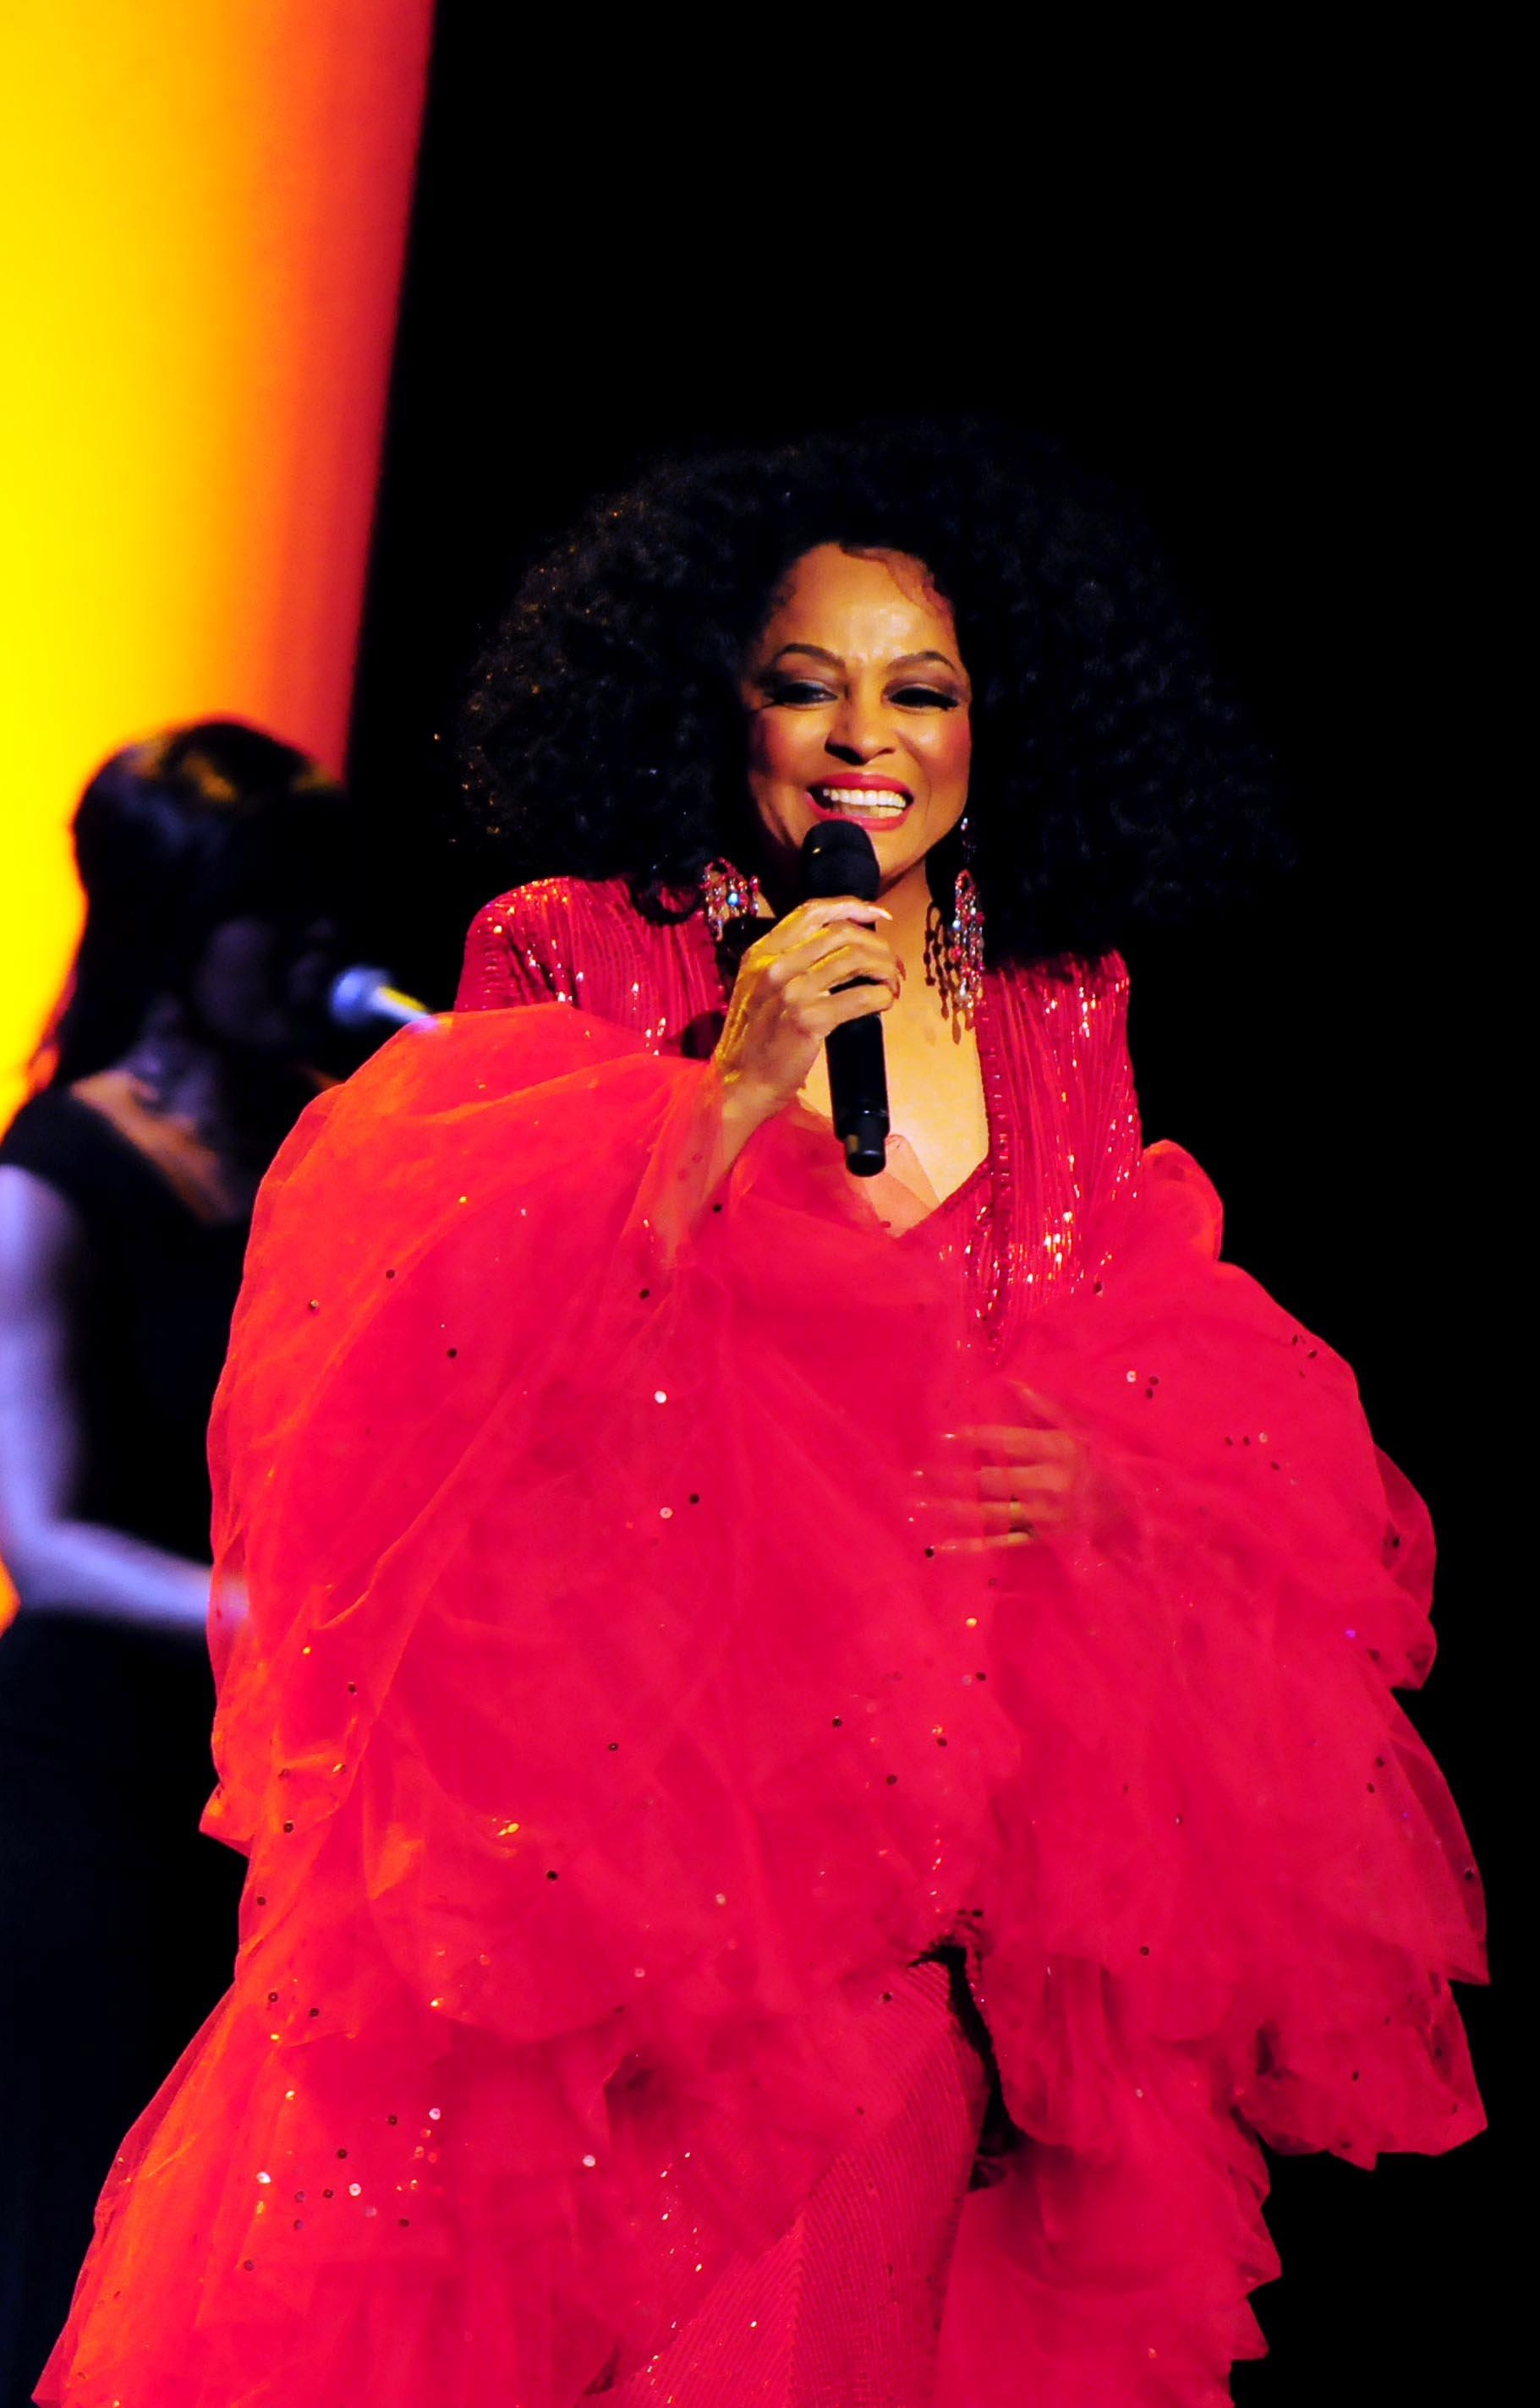 Diana Ross In Concert - November 21, 2010